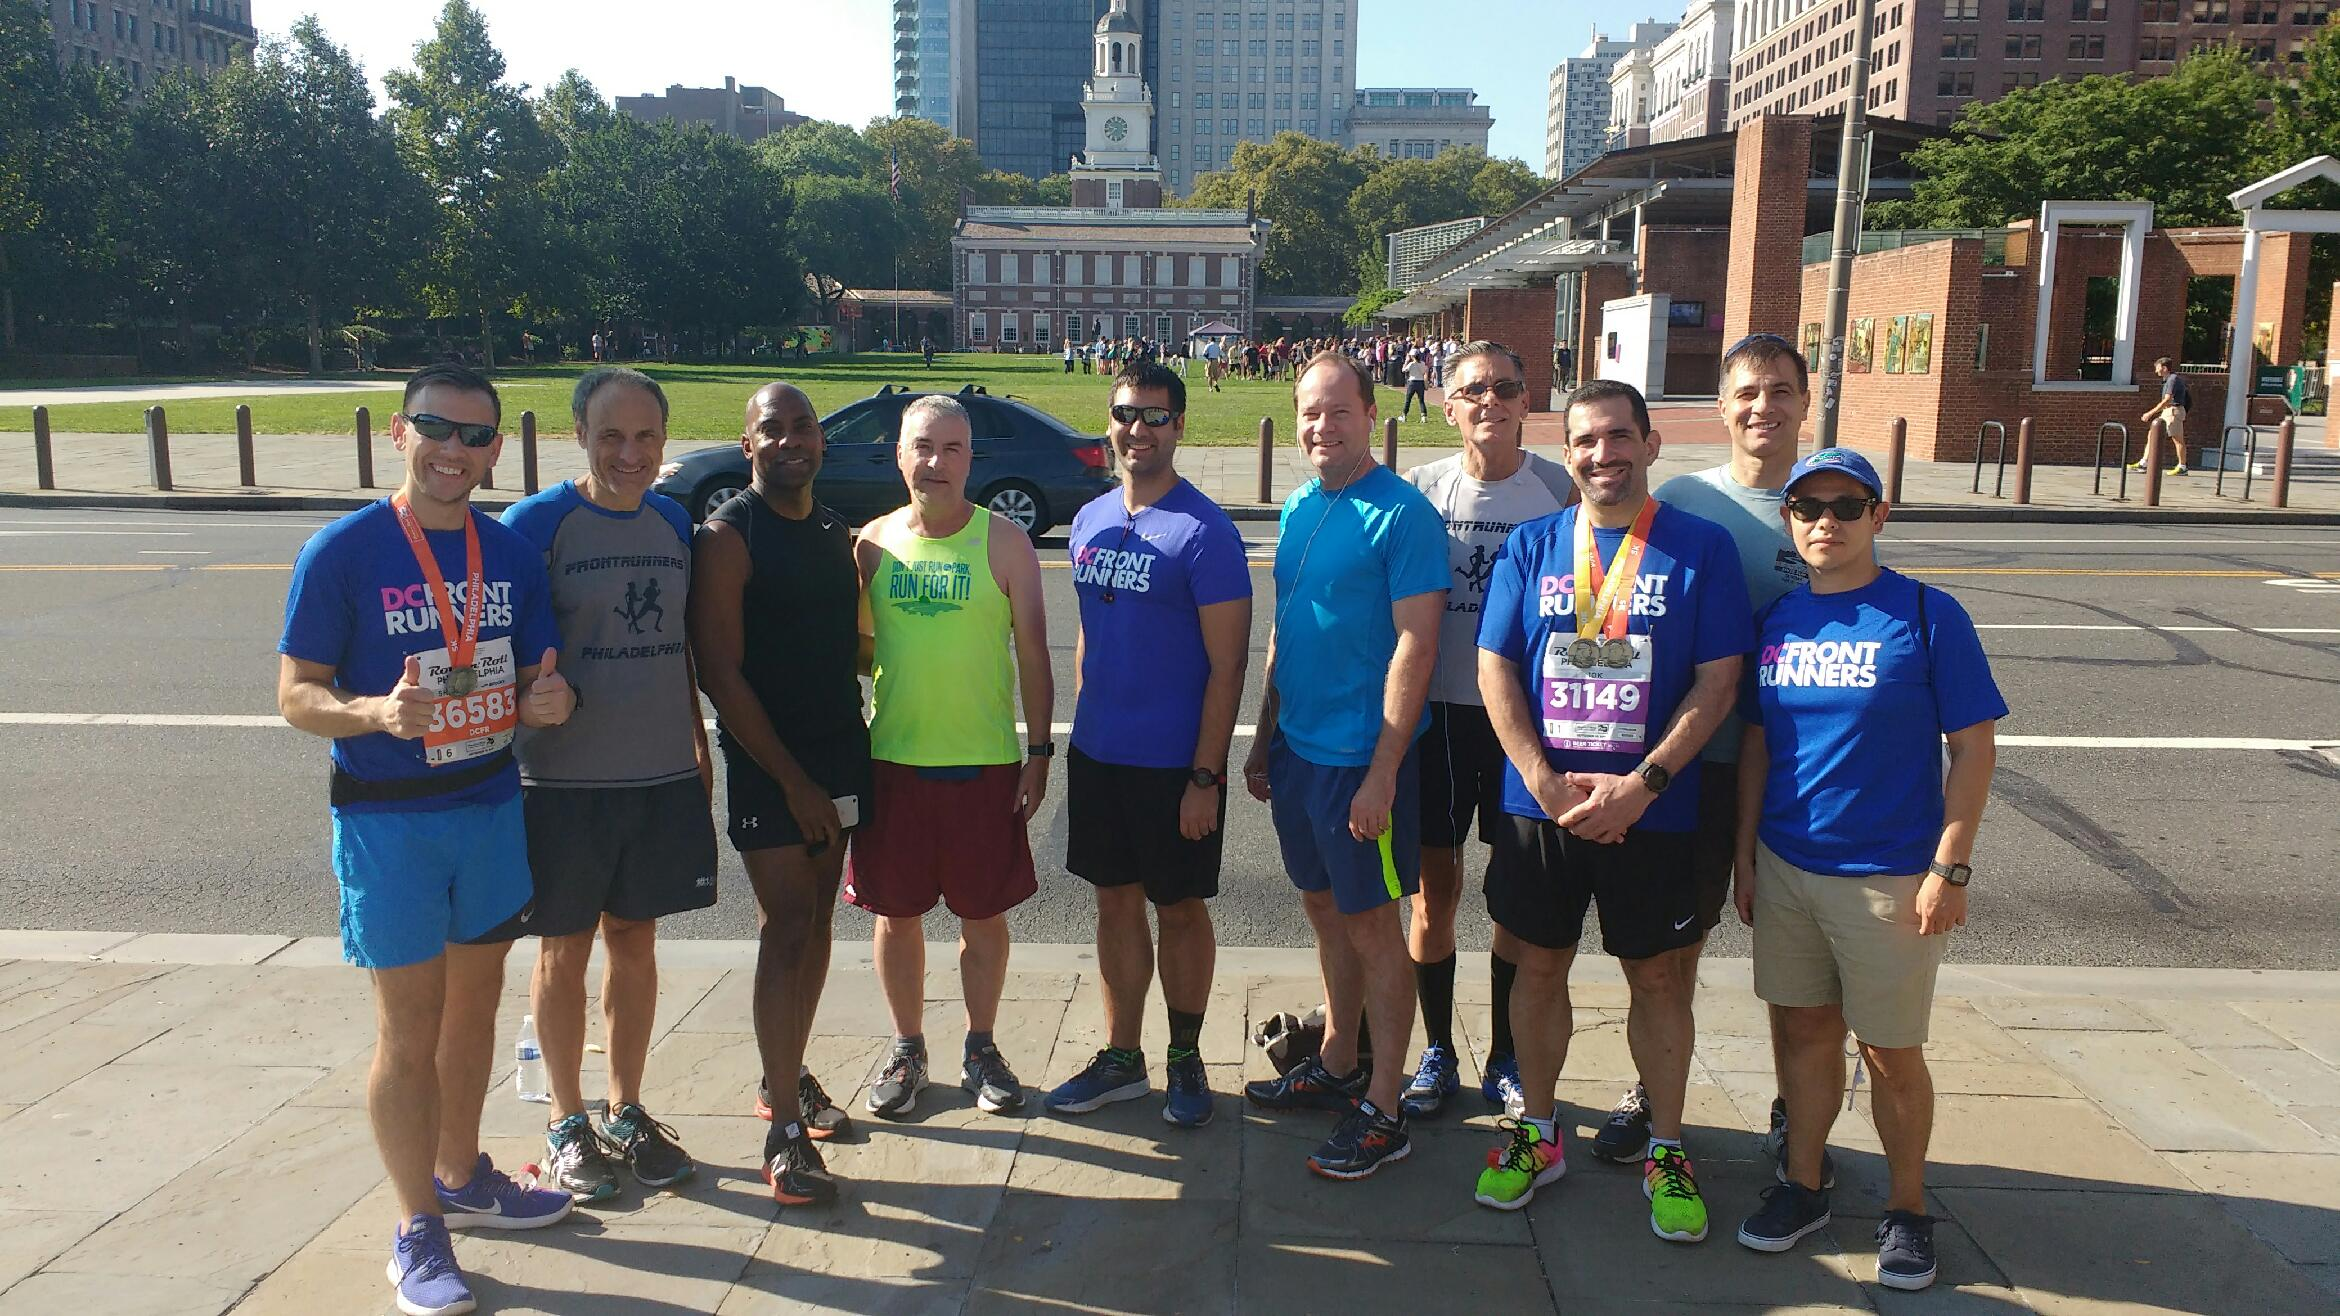 BenFranklinBridgeRun 9/16/2017